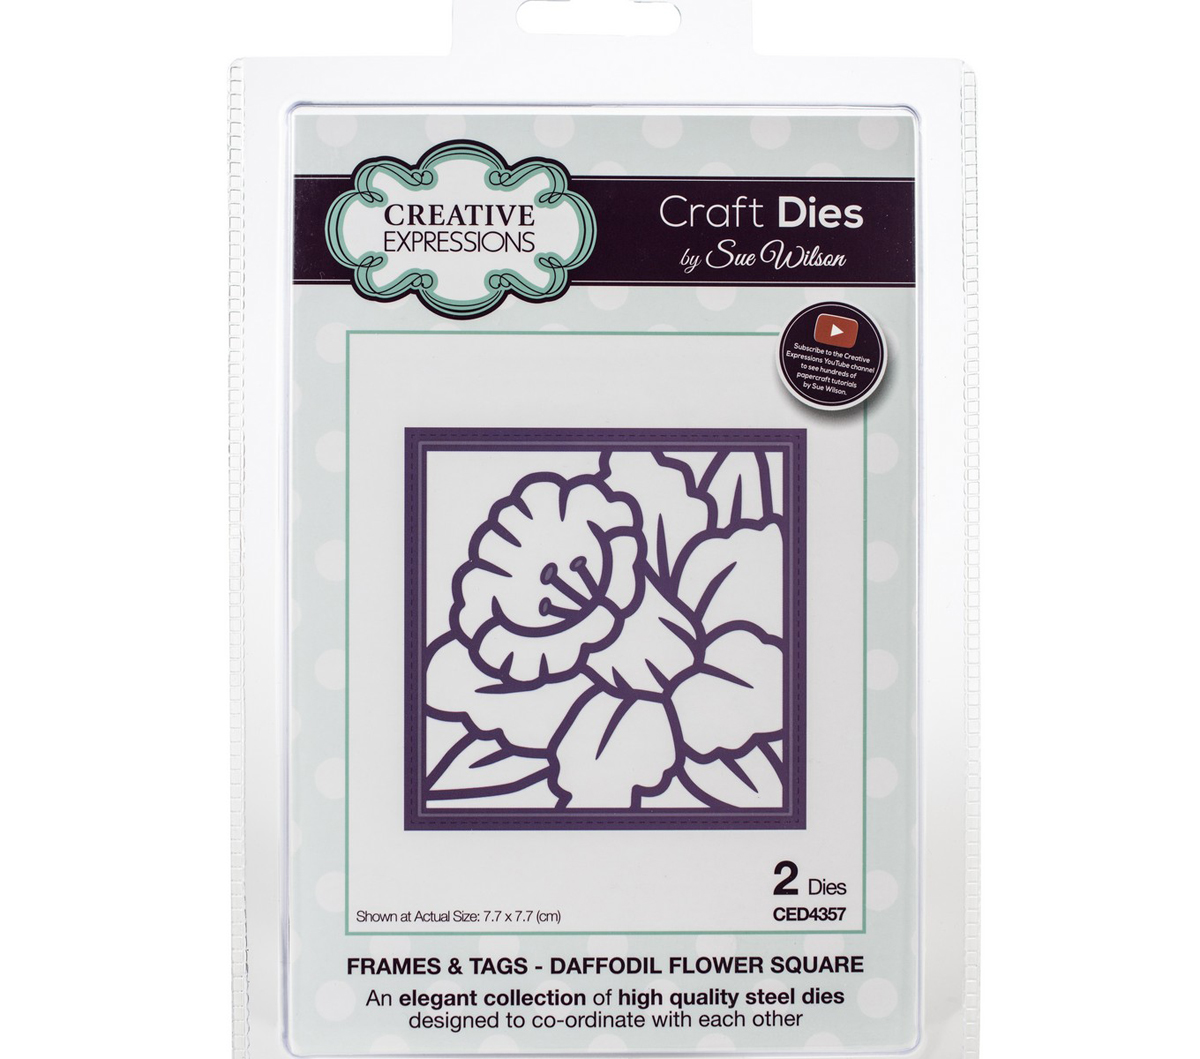 Craft Dies By Sue Wilson-Frames & Tags-Daffodil Flower